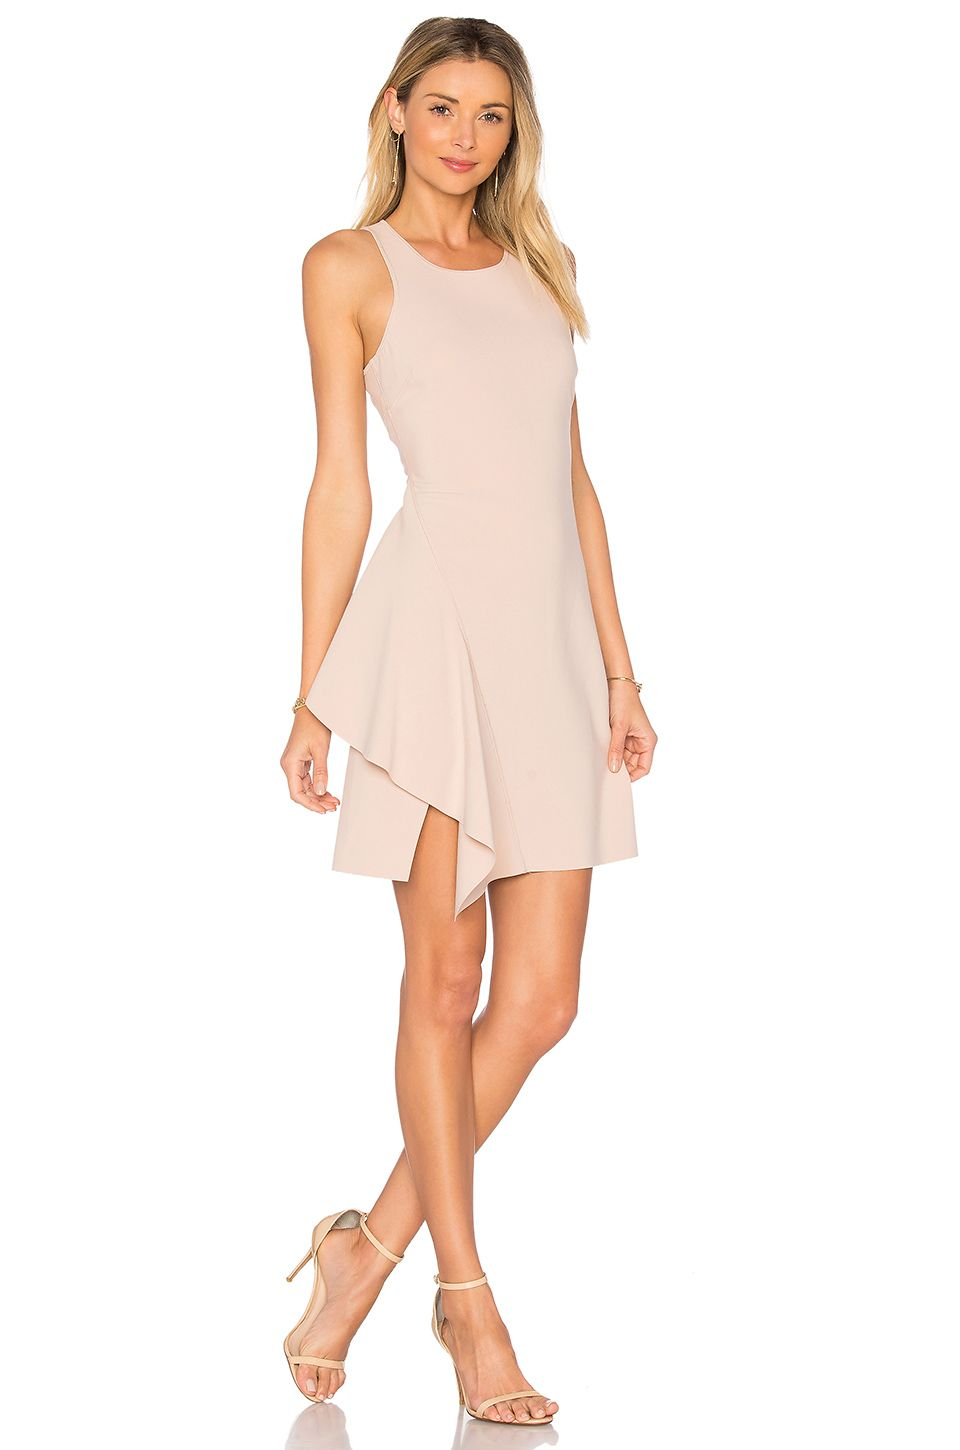 What To Wear To A Wedding 2018 Wedding Fashion Dos And Don Ts